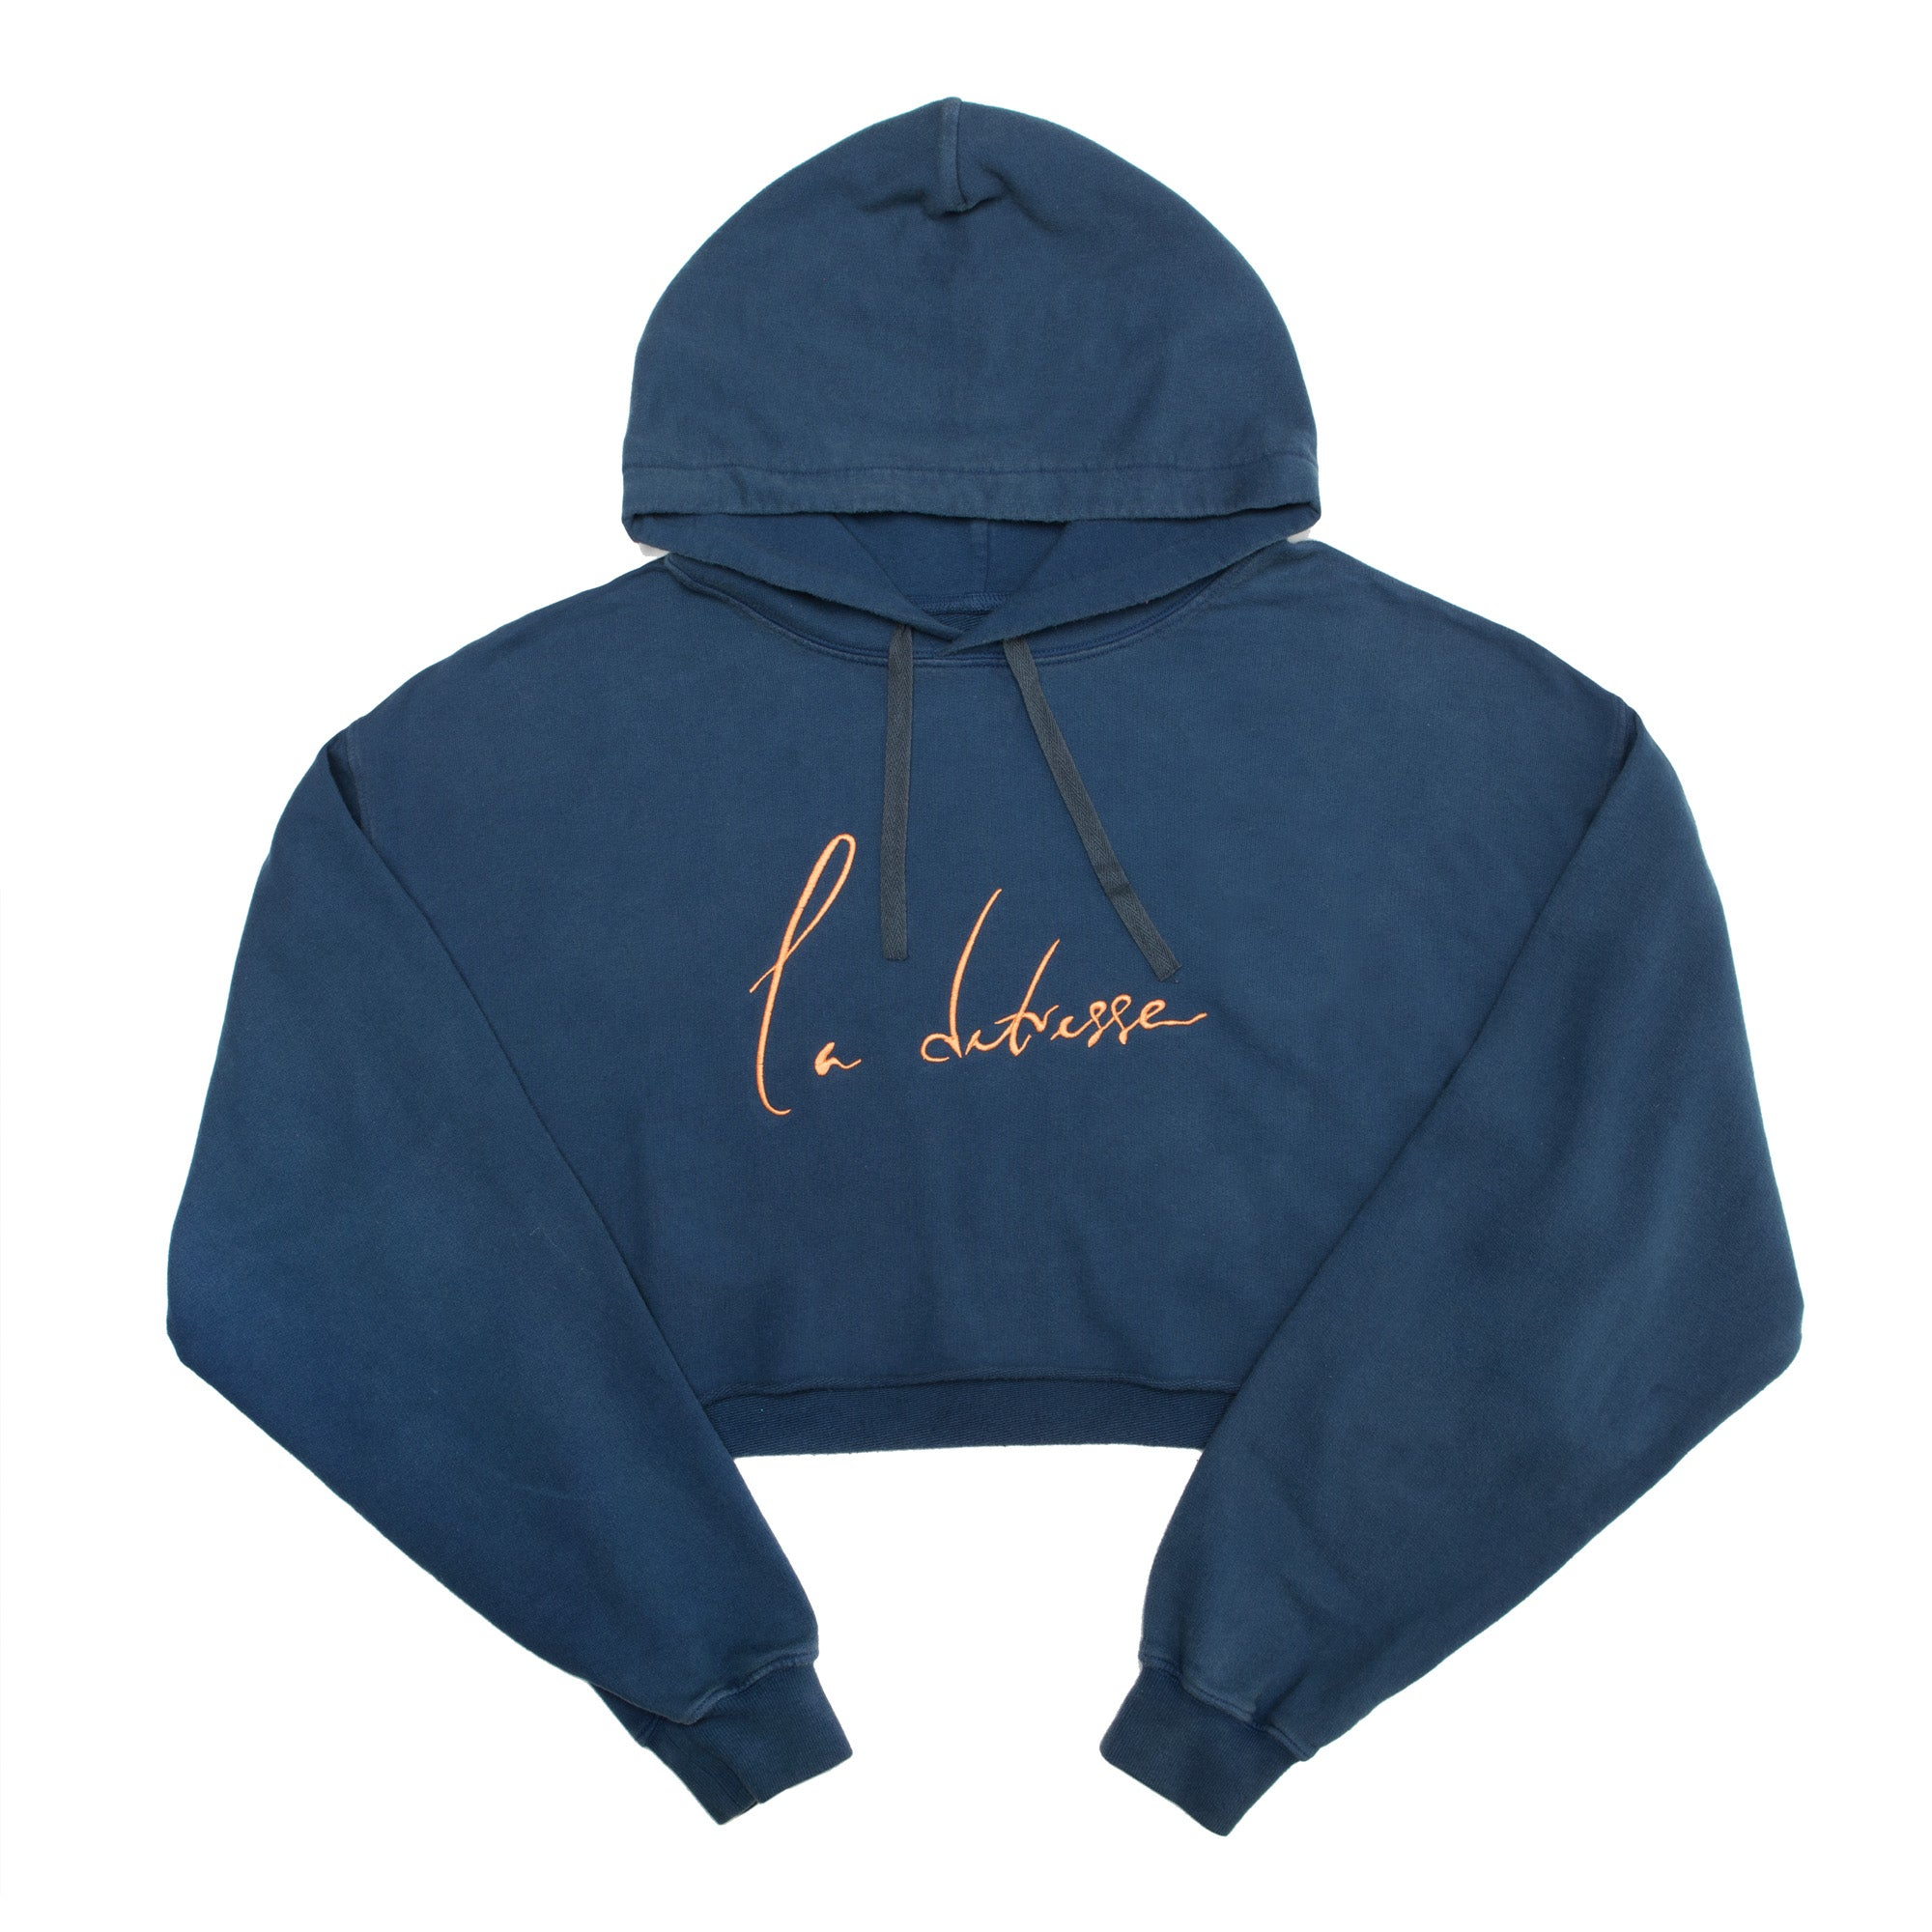 The Blue Crop Hoodie